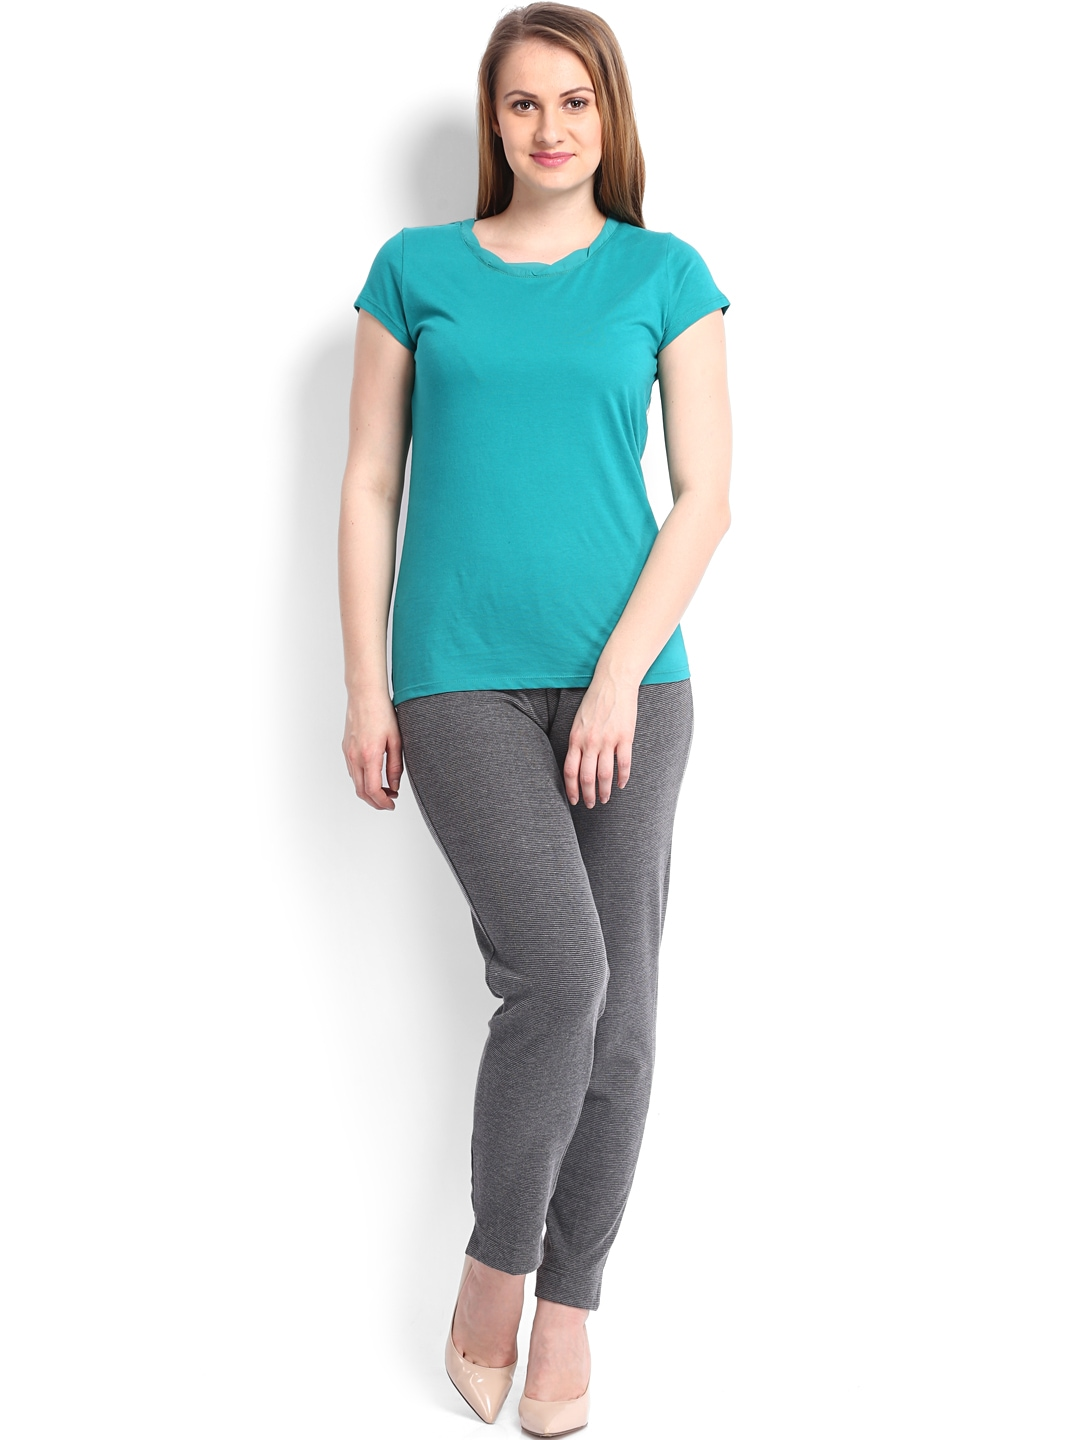 Popular  Lounge Pants For Women SizeS Online At Low Prices In India  Paytm